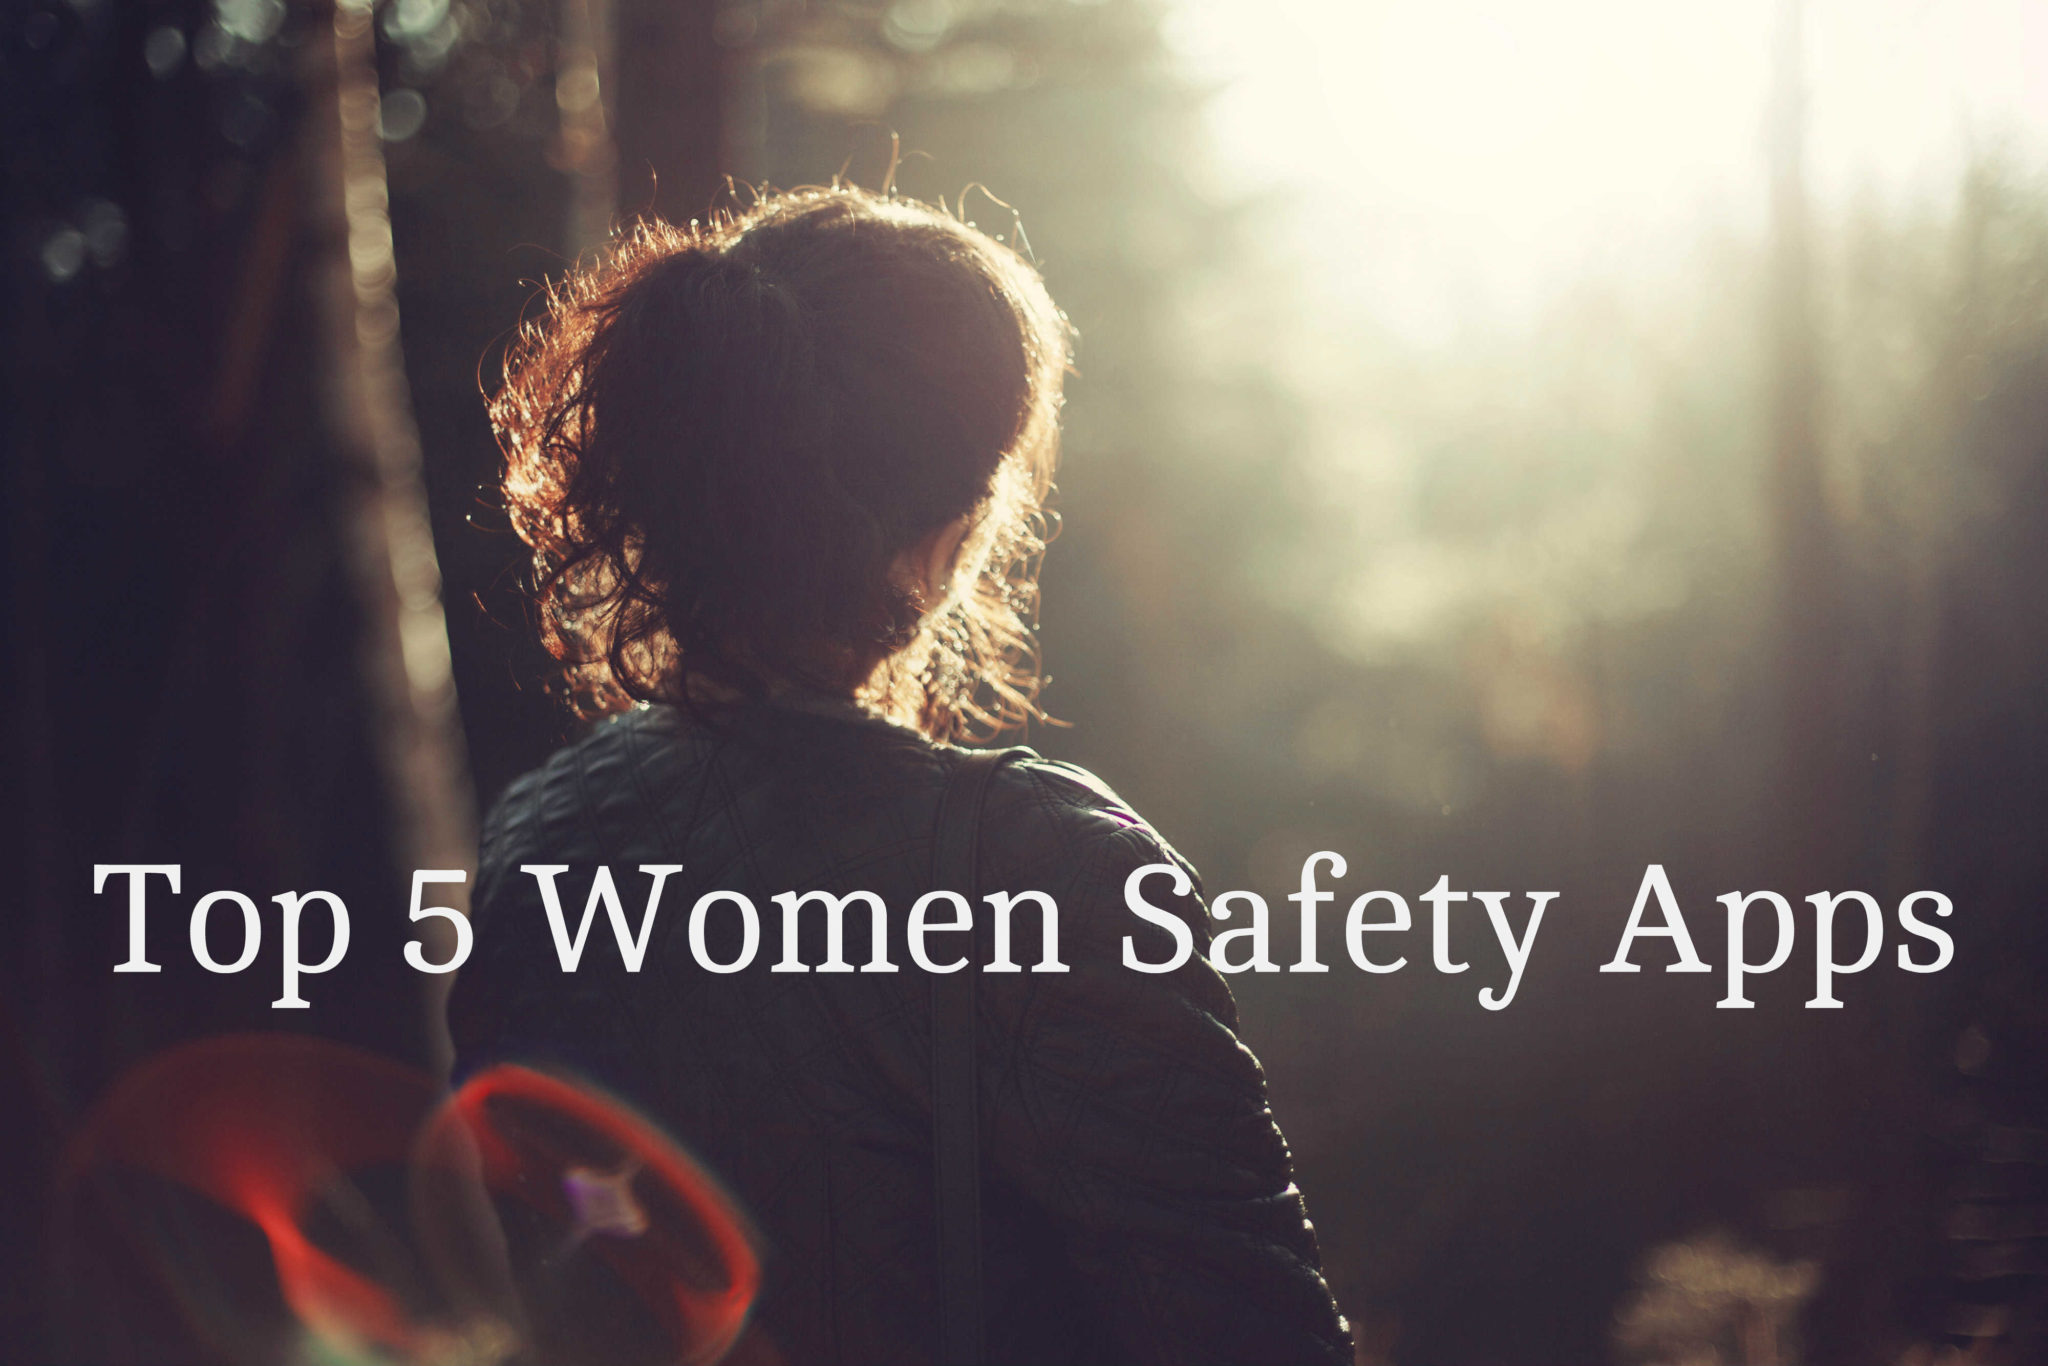 Women Safety Apps